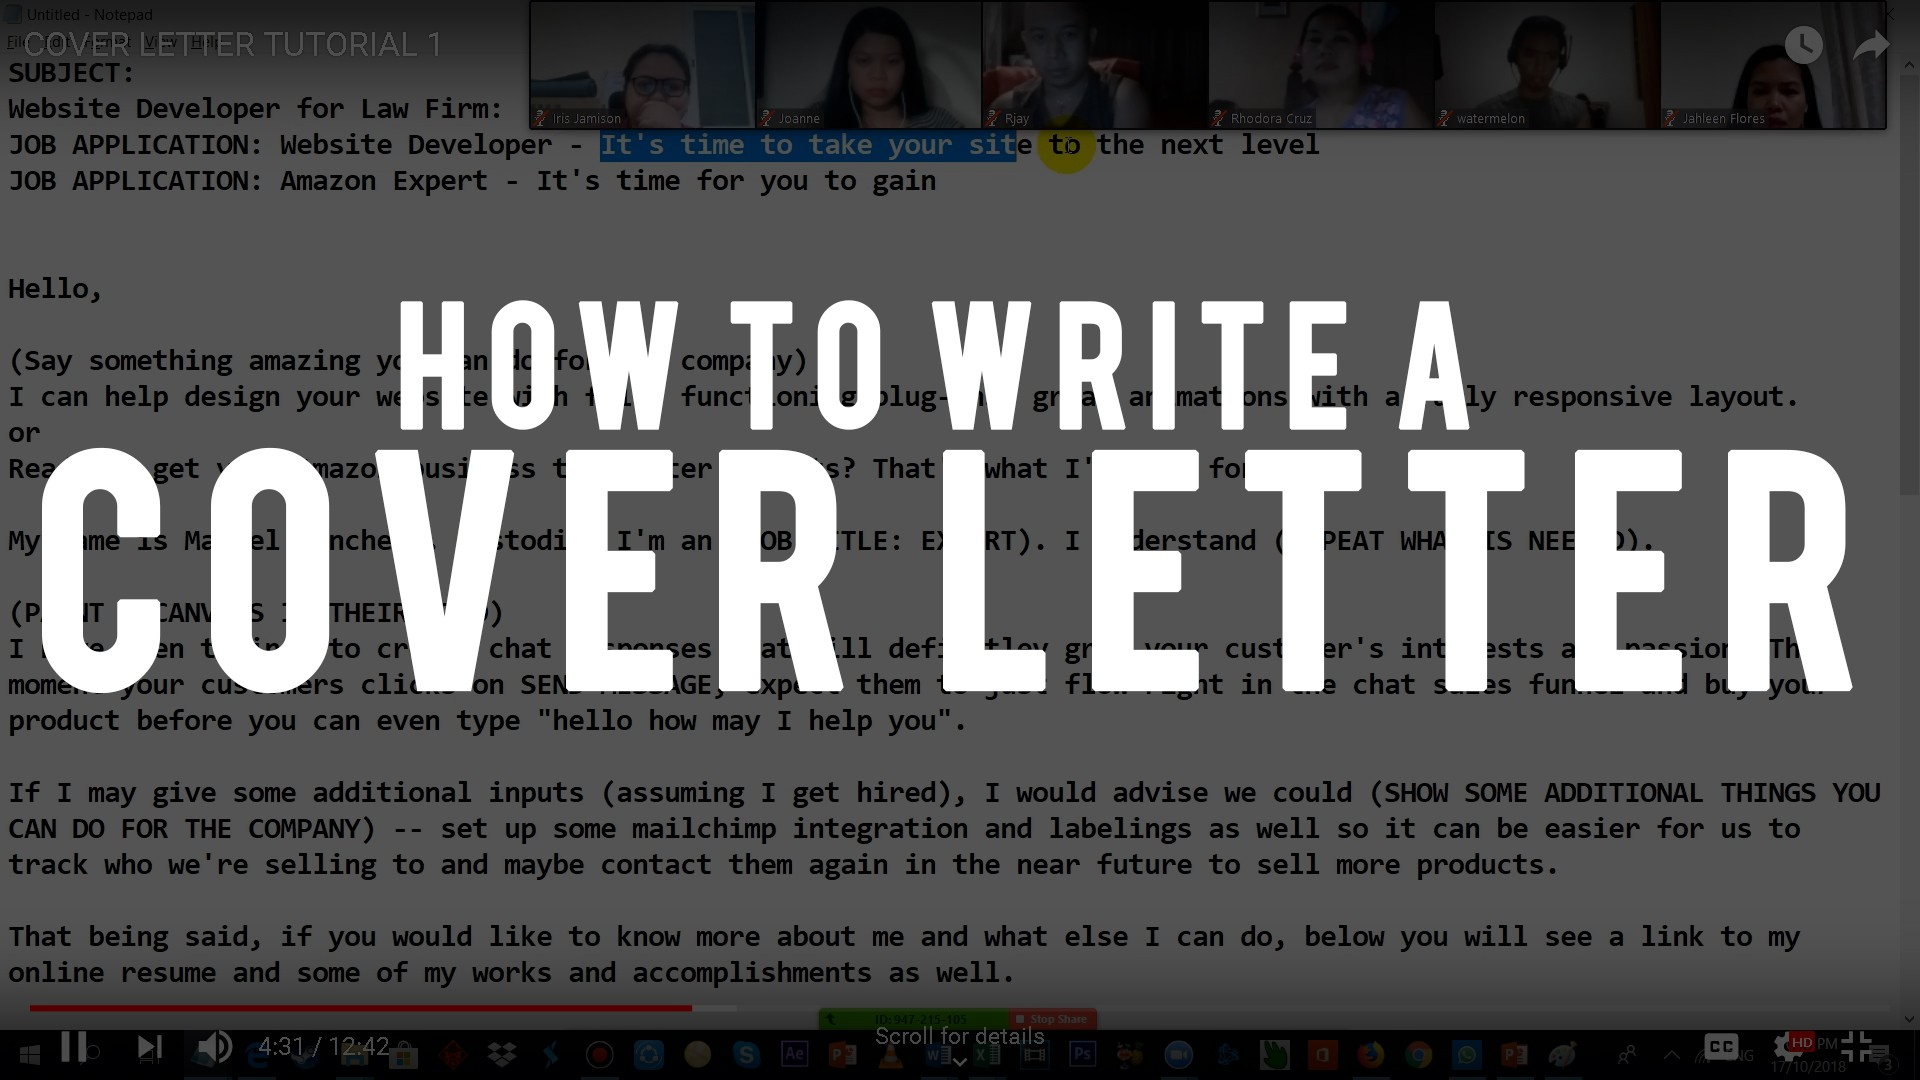 COVER LETTER TUTORIAL